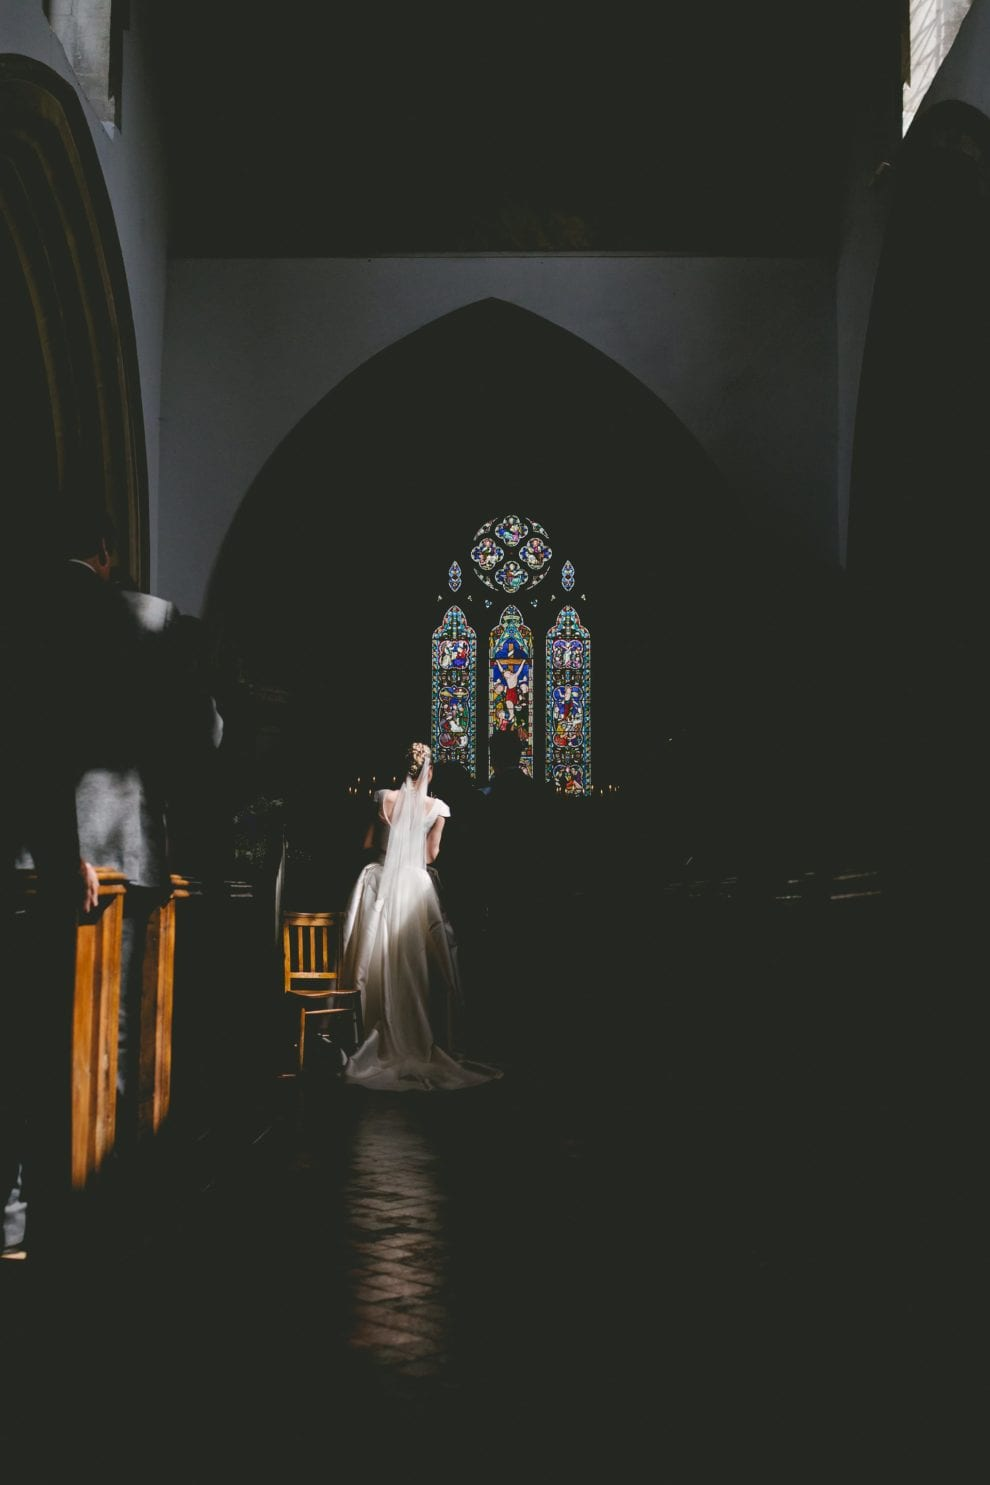 Best Wedding Photography 2016 - London and the South East Weddings (89)